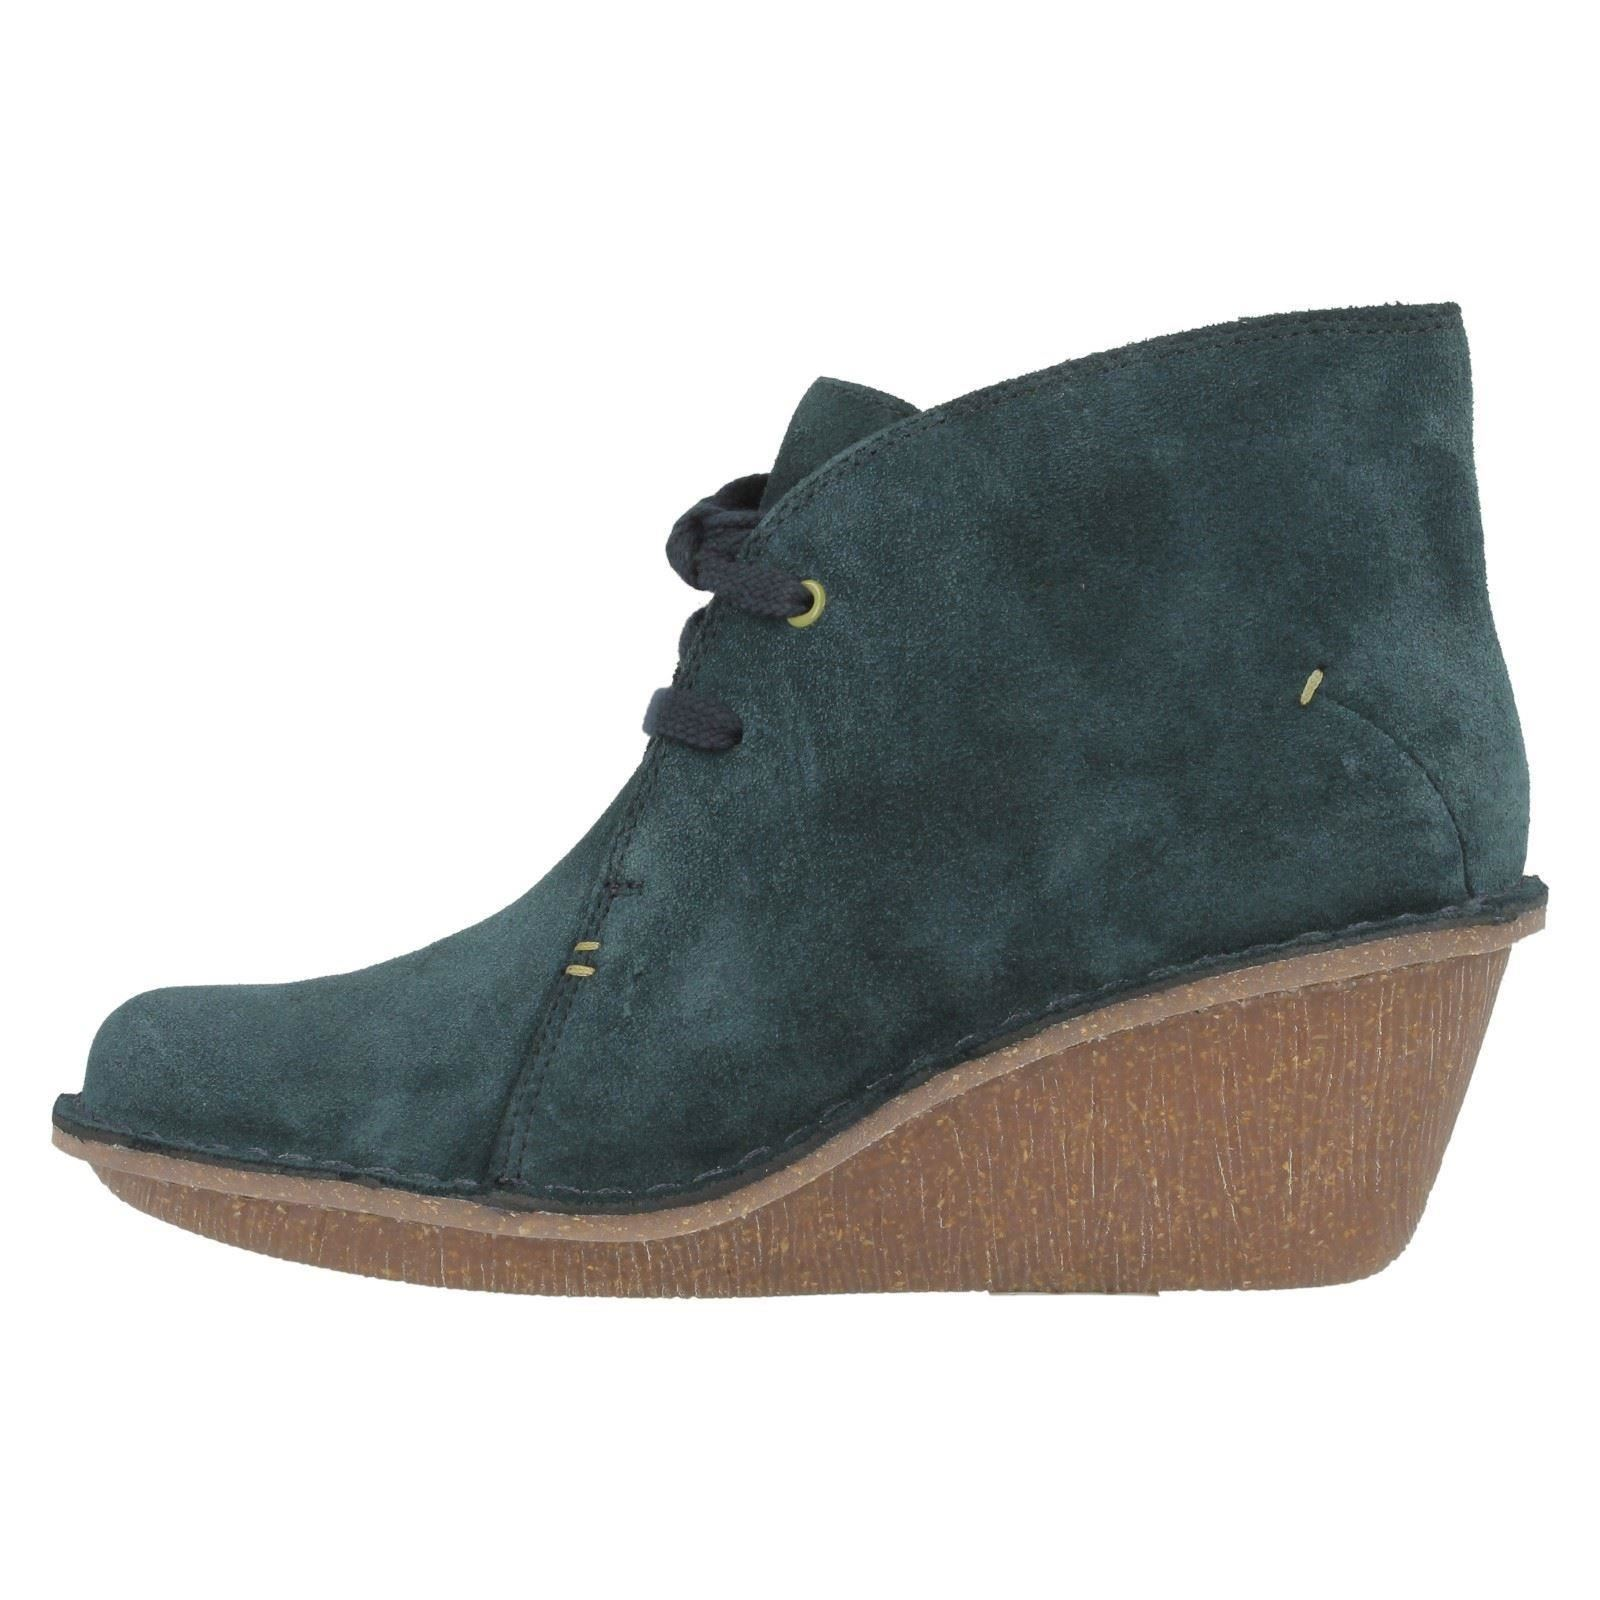 clarks leather suede wedge ankle boots marsden